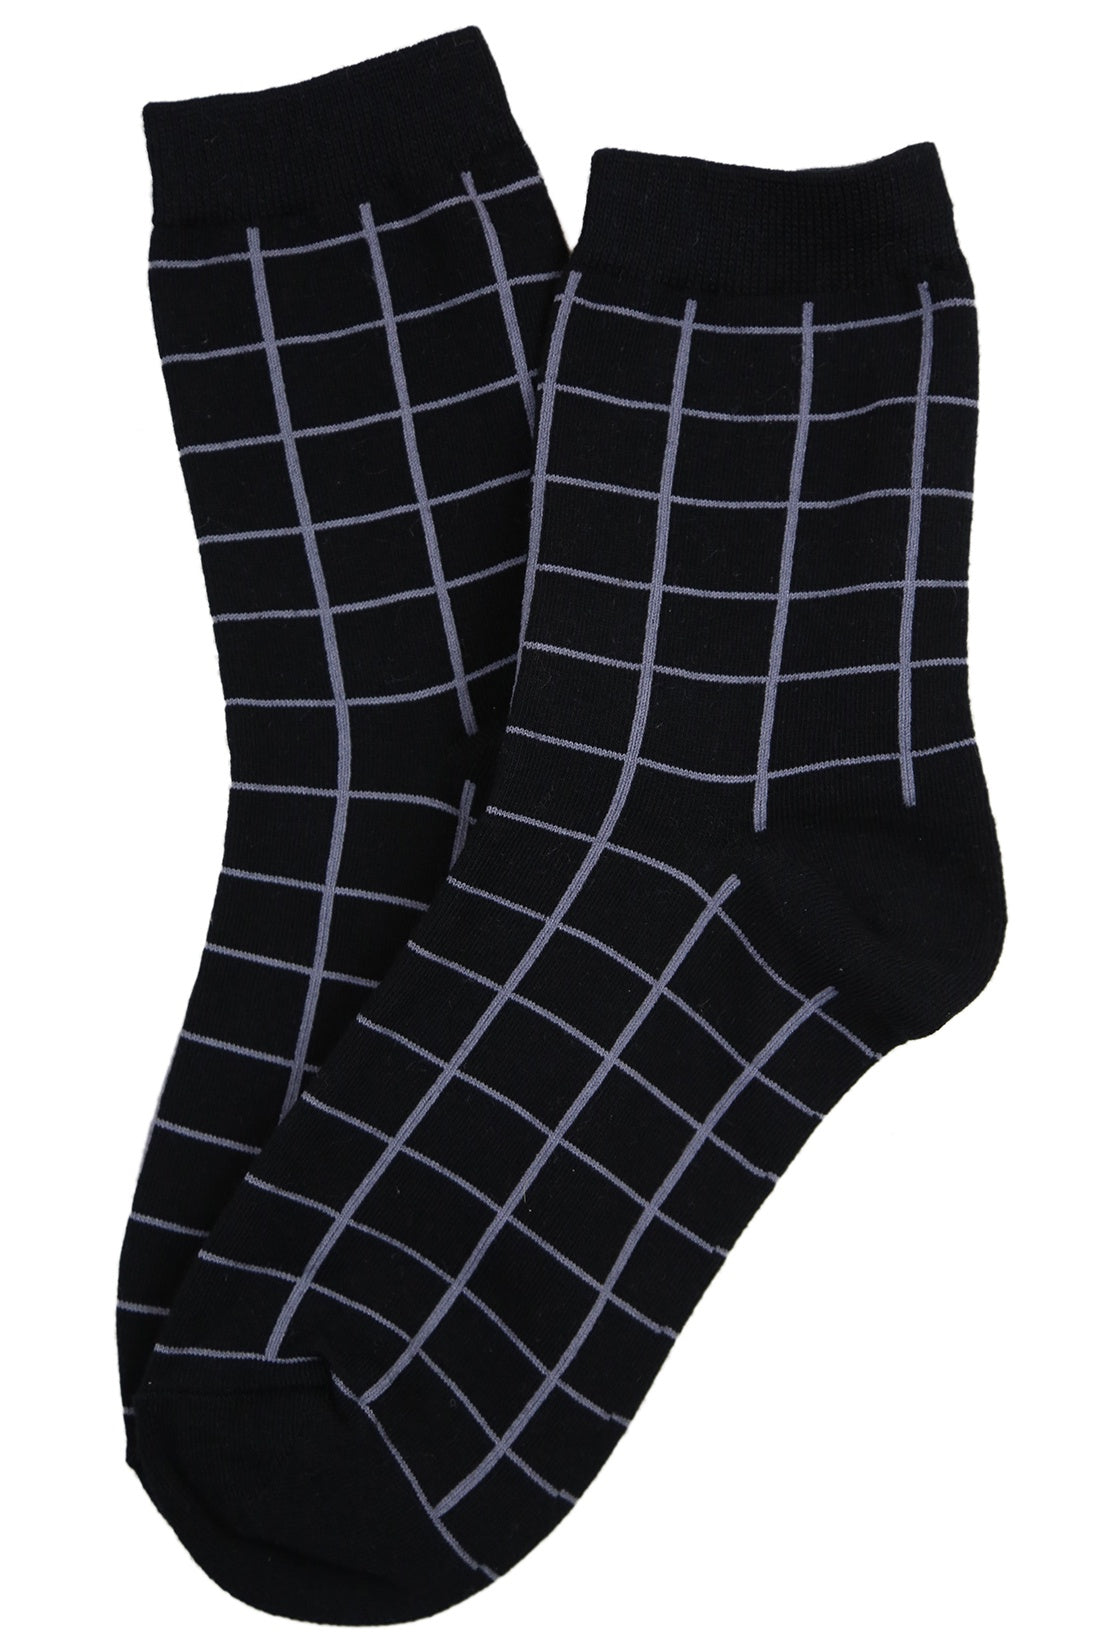 Grid Cotton Socks Black